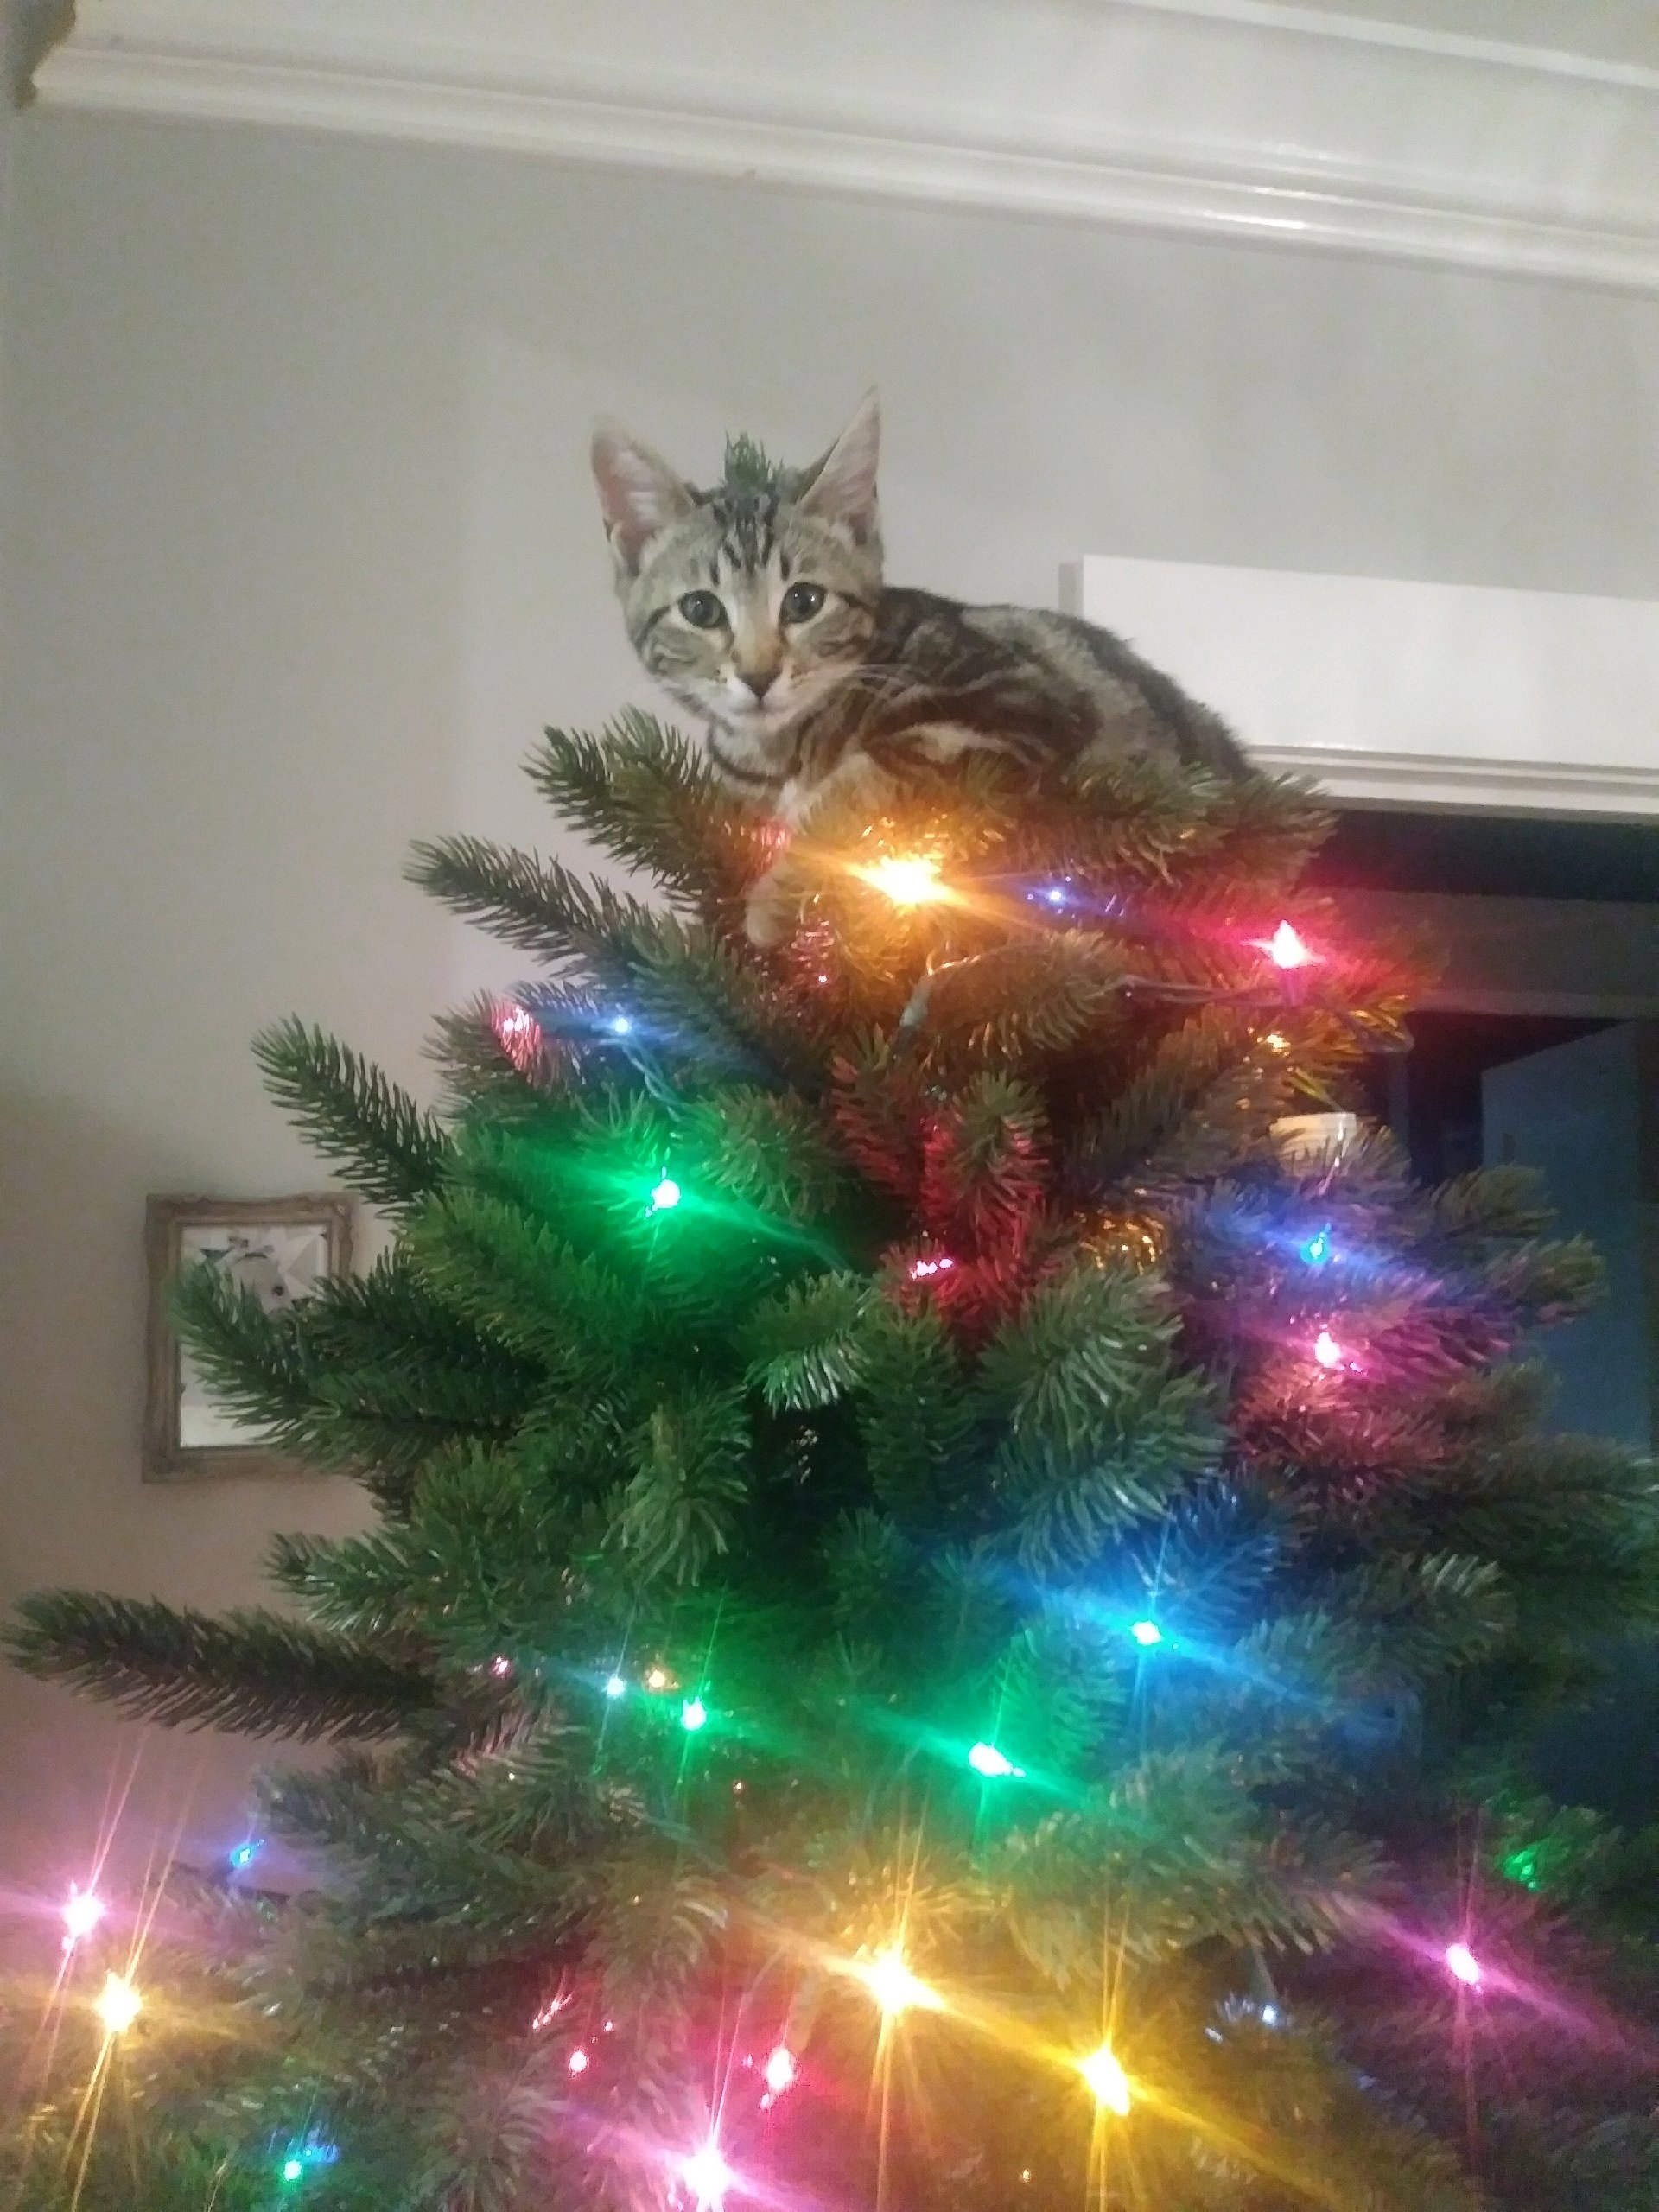 Christmas Tree Star Cat of California. Good luck getting them down :)